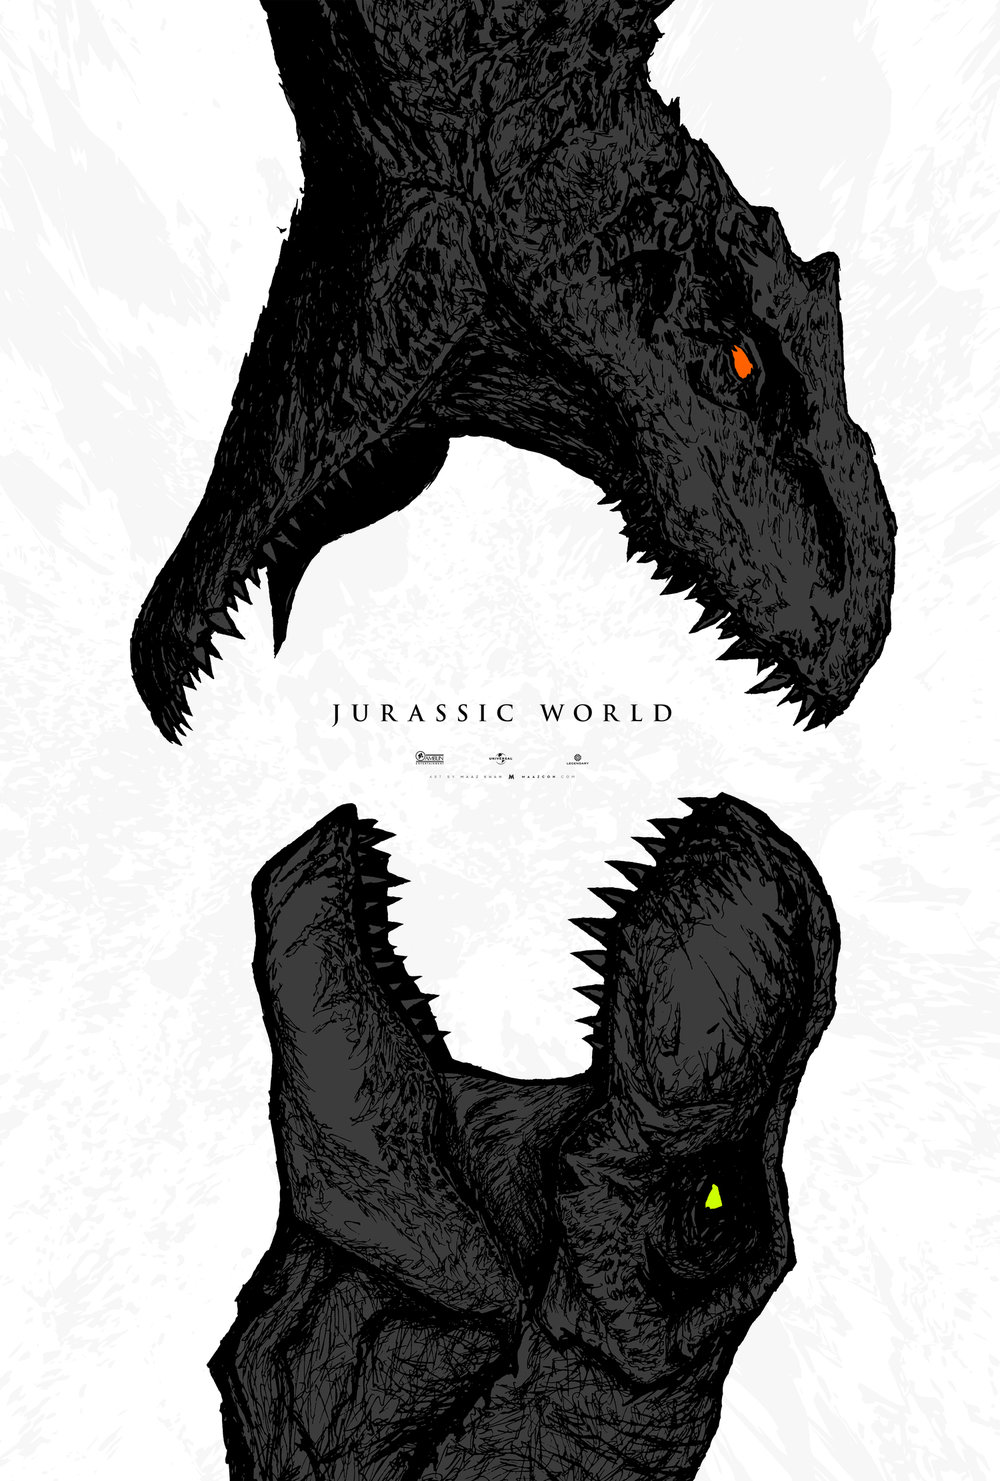 Jurassic World (1/3) [Alternate]